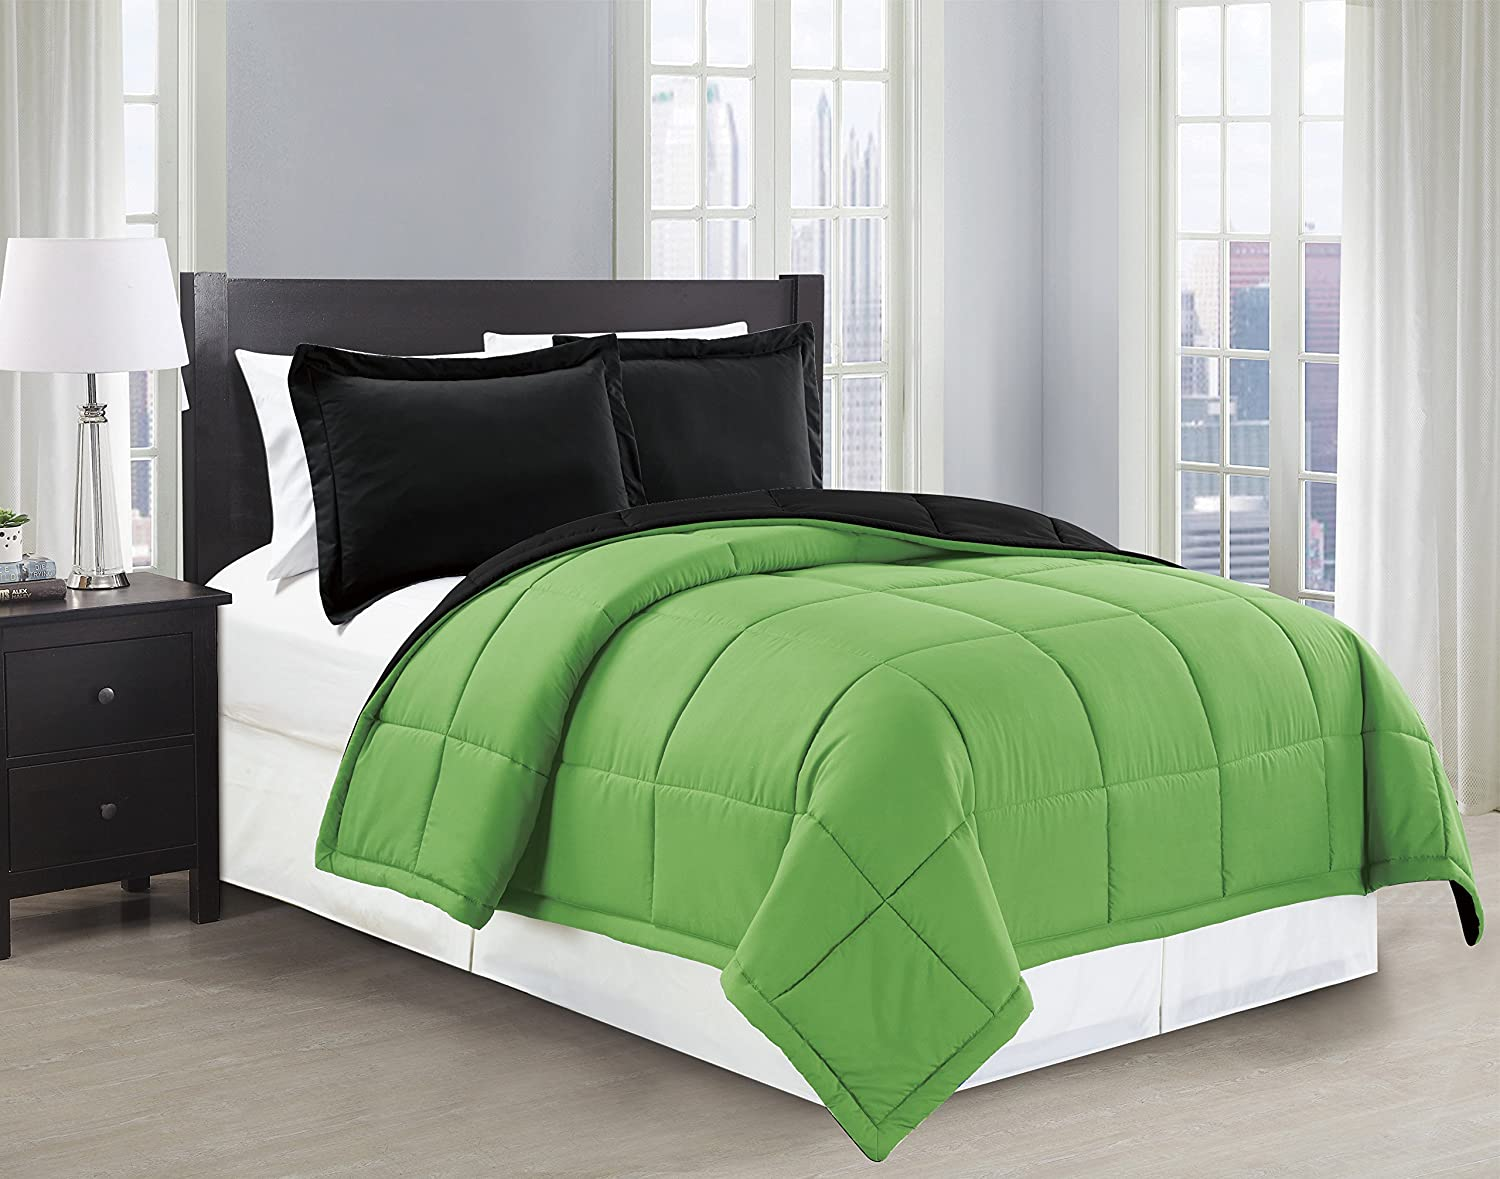 Mk Collection Down Alternative Comforter Set 2pc twin, Black/Lime Green